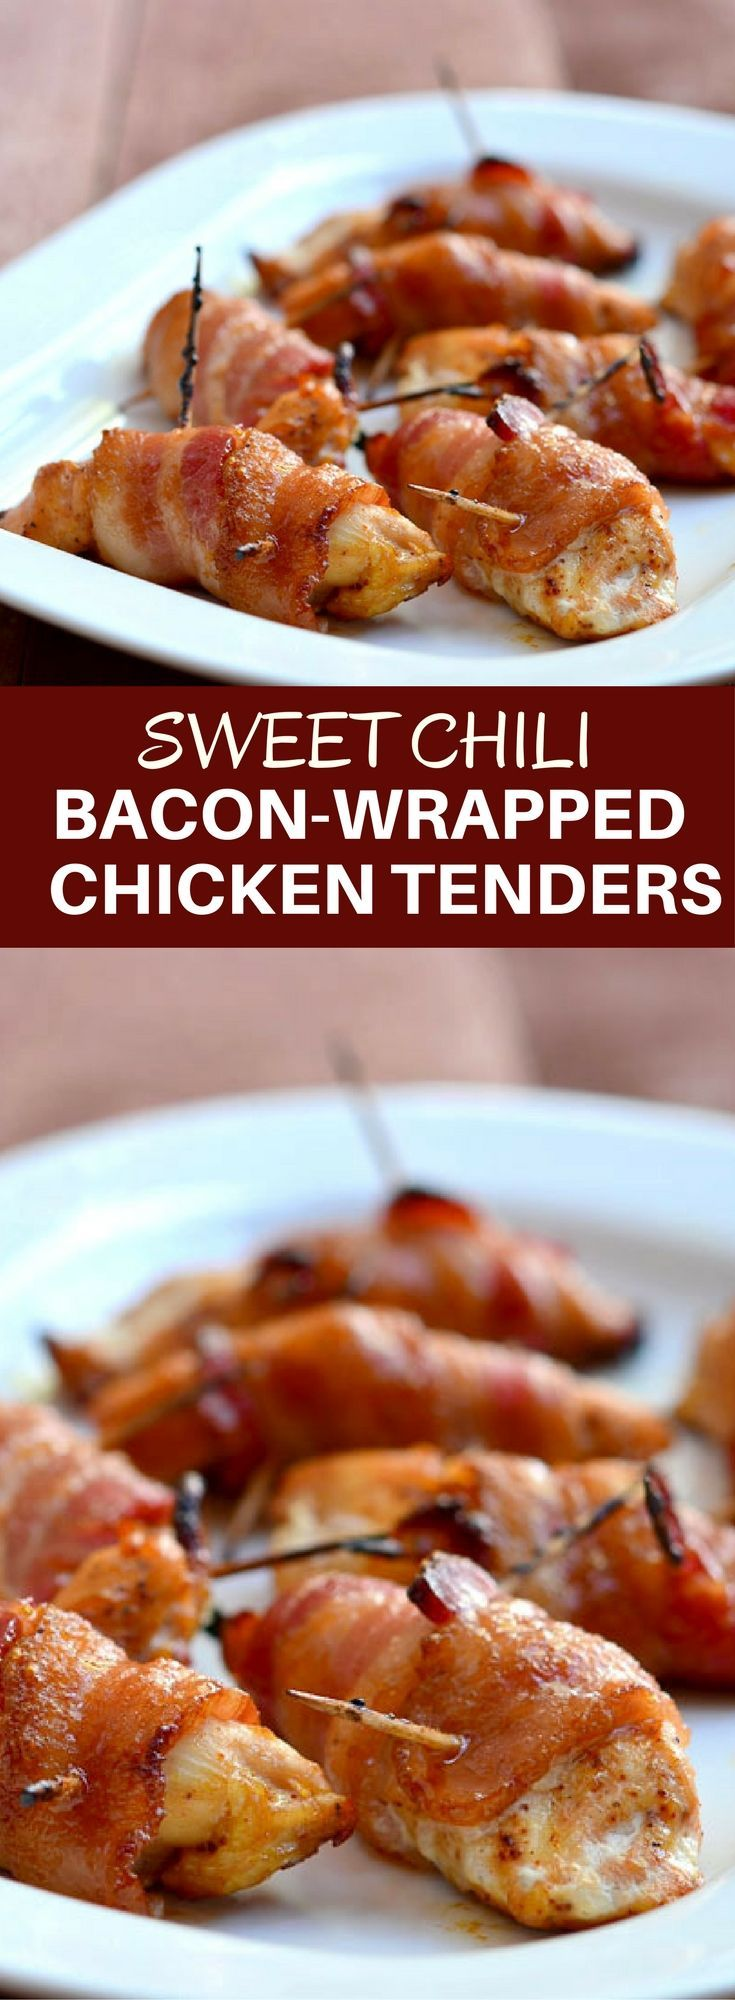 Sweet Chili Bacon-Wrapped Chicken Tenders coated in brown sugar and chili powder and then baked until crisp and delicious! Perfect as game day appetizers or as an easy weeknight dinner. #chickenappetizers #chickentenders #bacon #brownsugarchicken